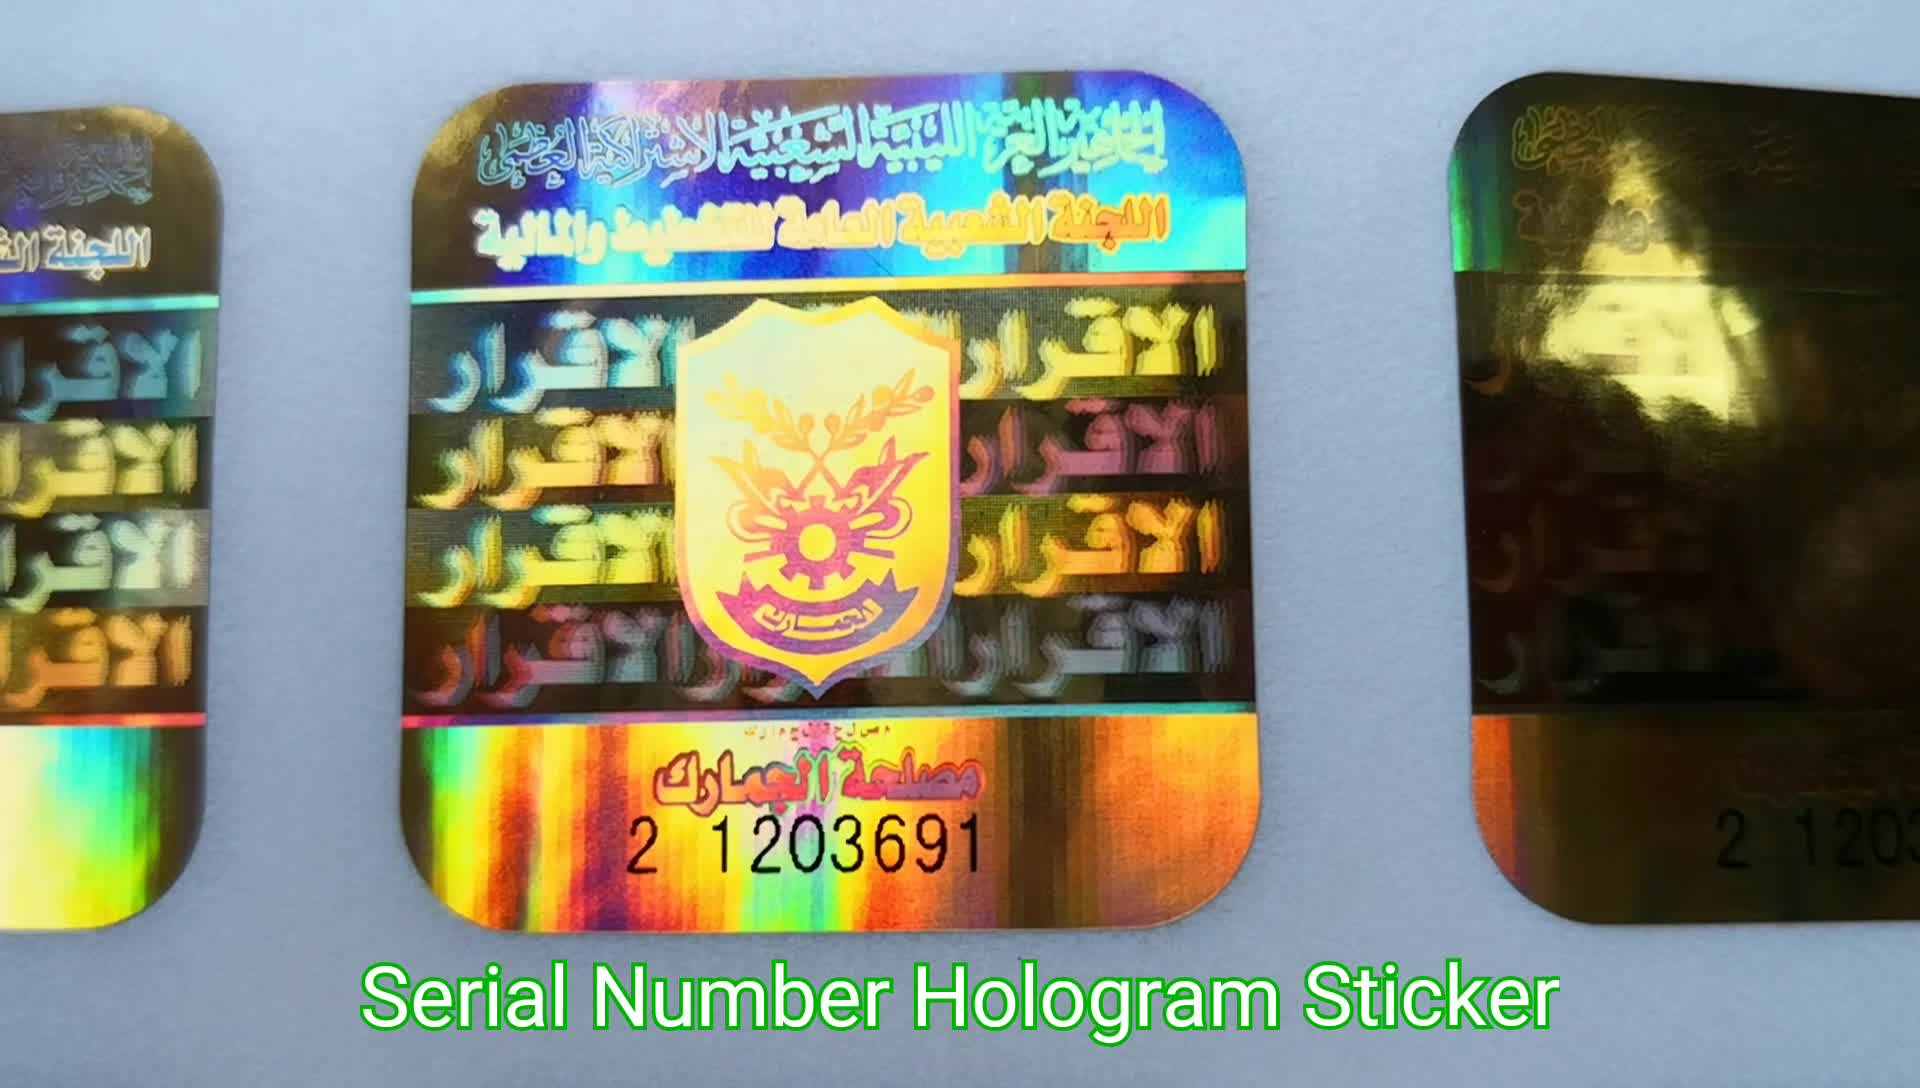 Gold Custom Tamper Proof Hologram Stickers with Numbering